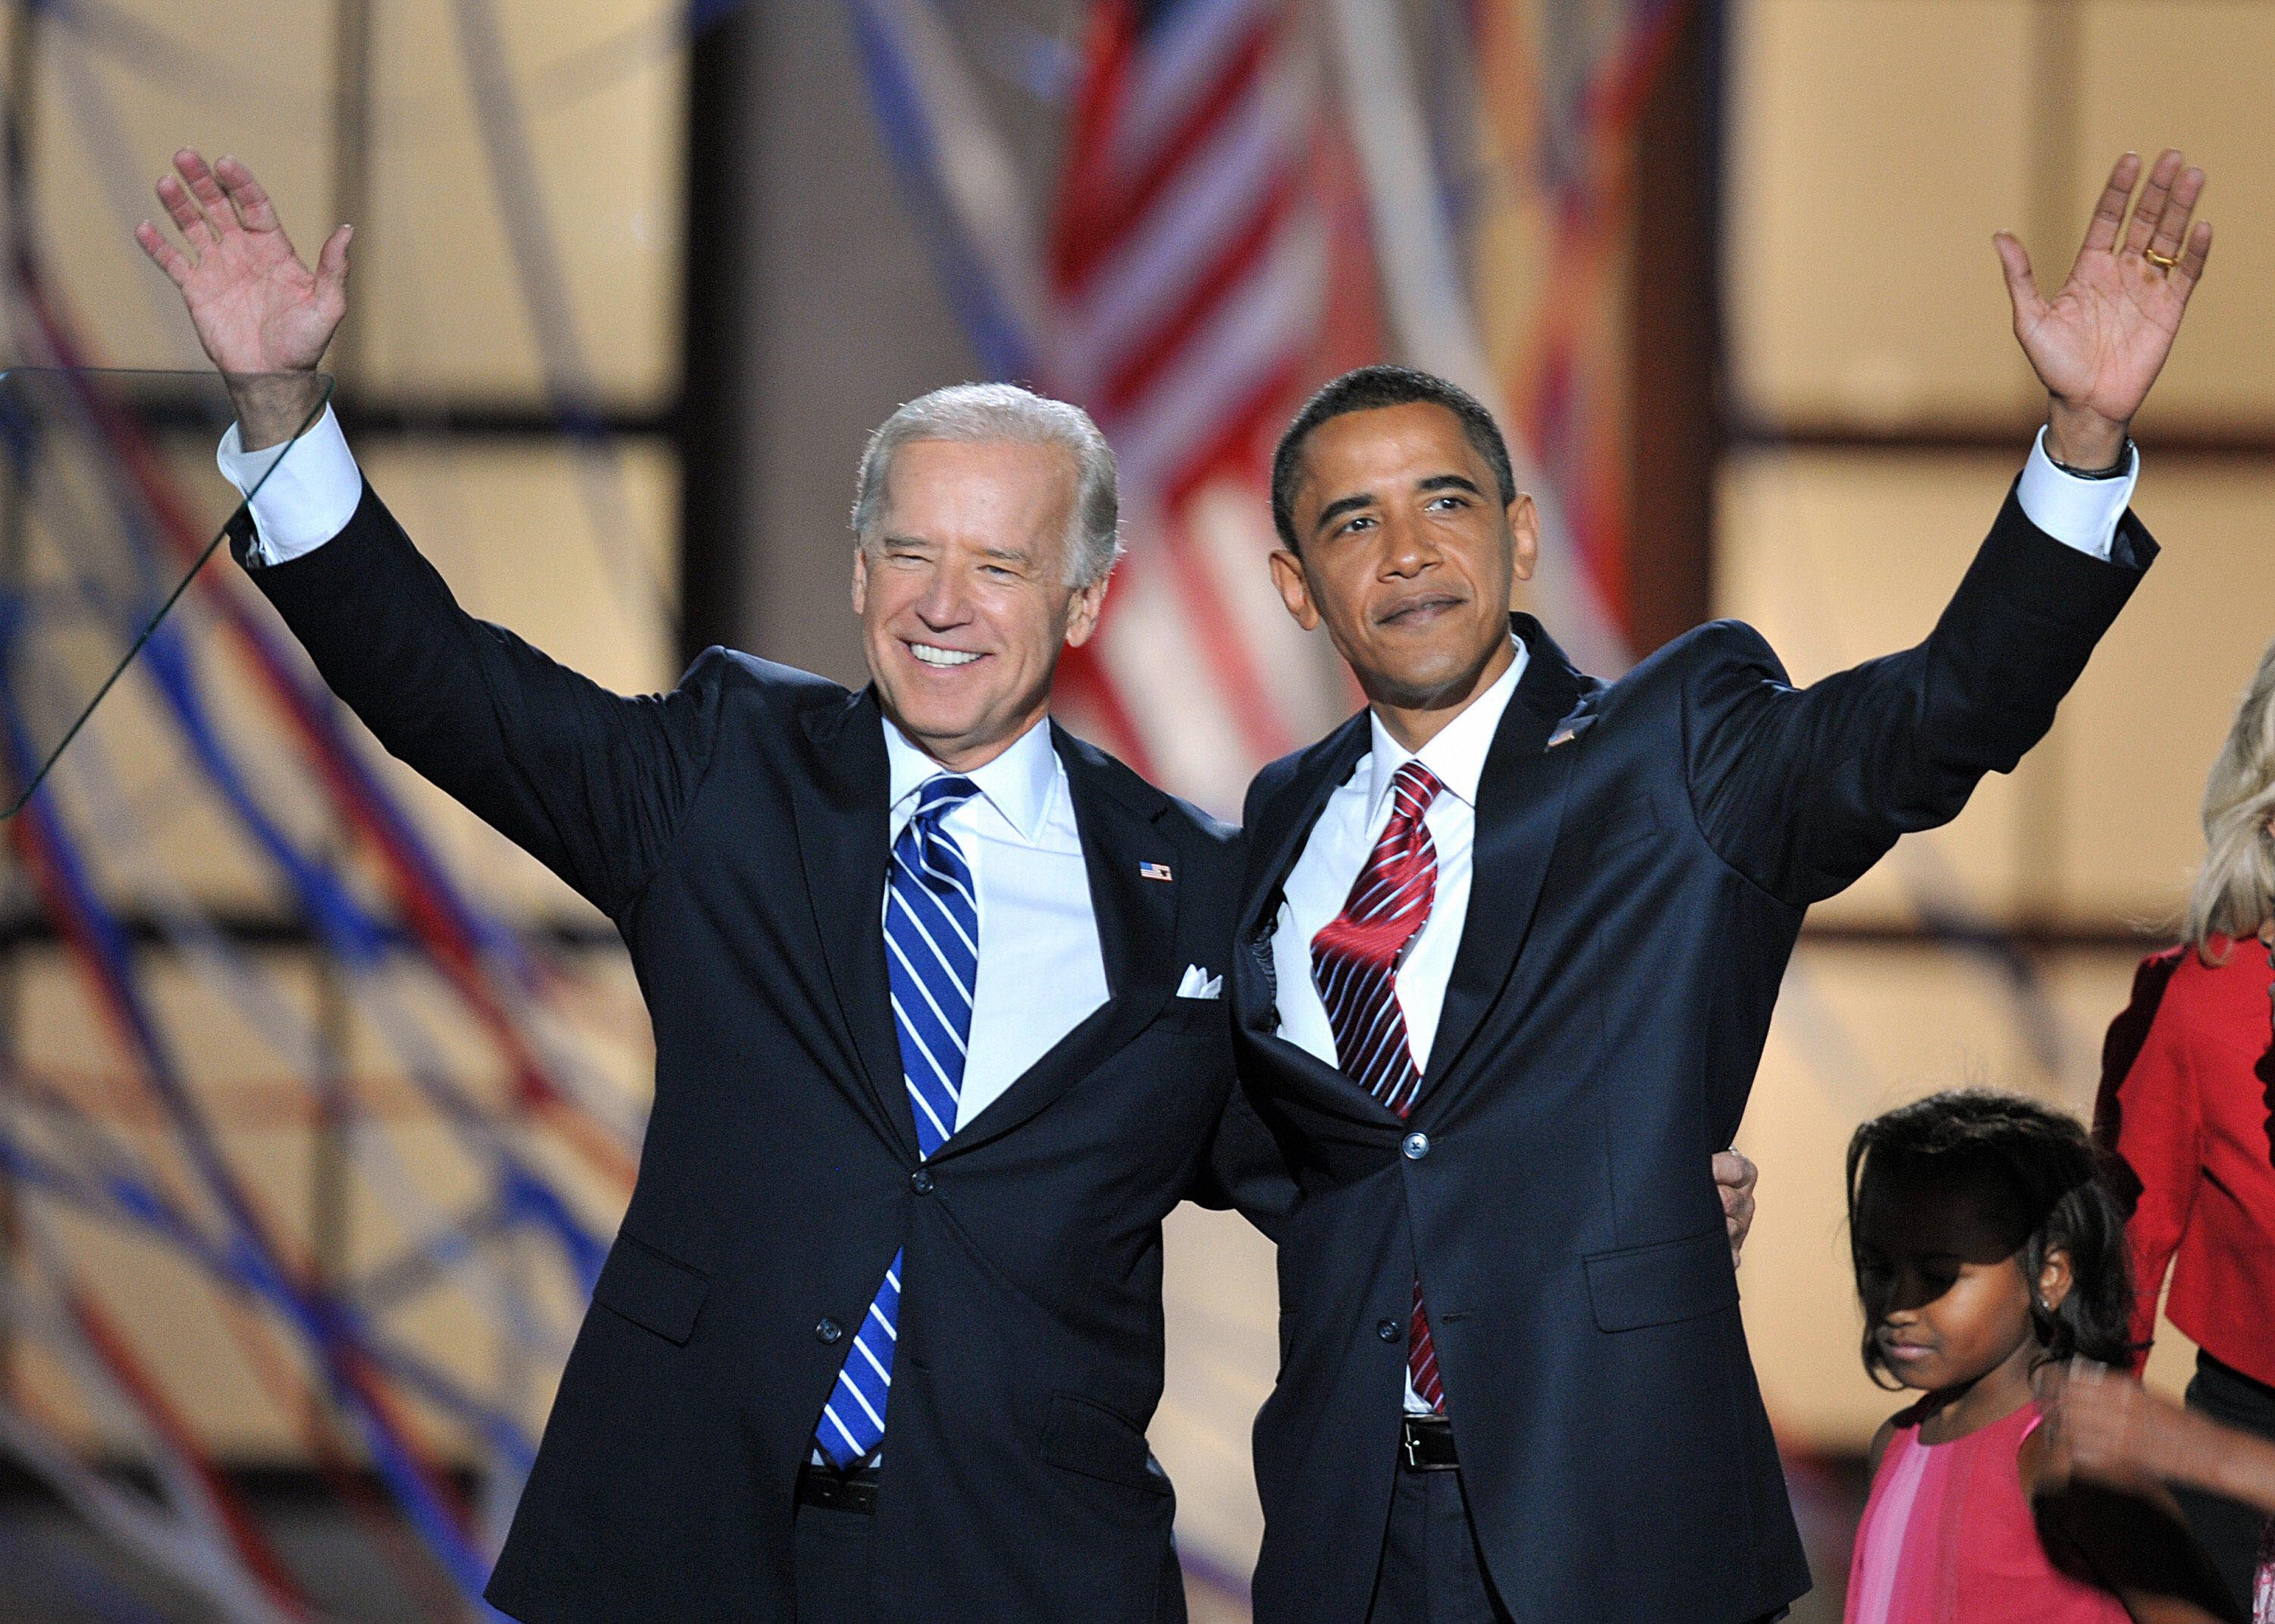 Then-Democratic Presidential candidate Barack Obama and then-Vice Presidential candidate Joe Biden appear on stage at the end of the Democratic National Convention in Denver, Colorado, in August 2008.